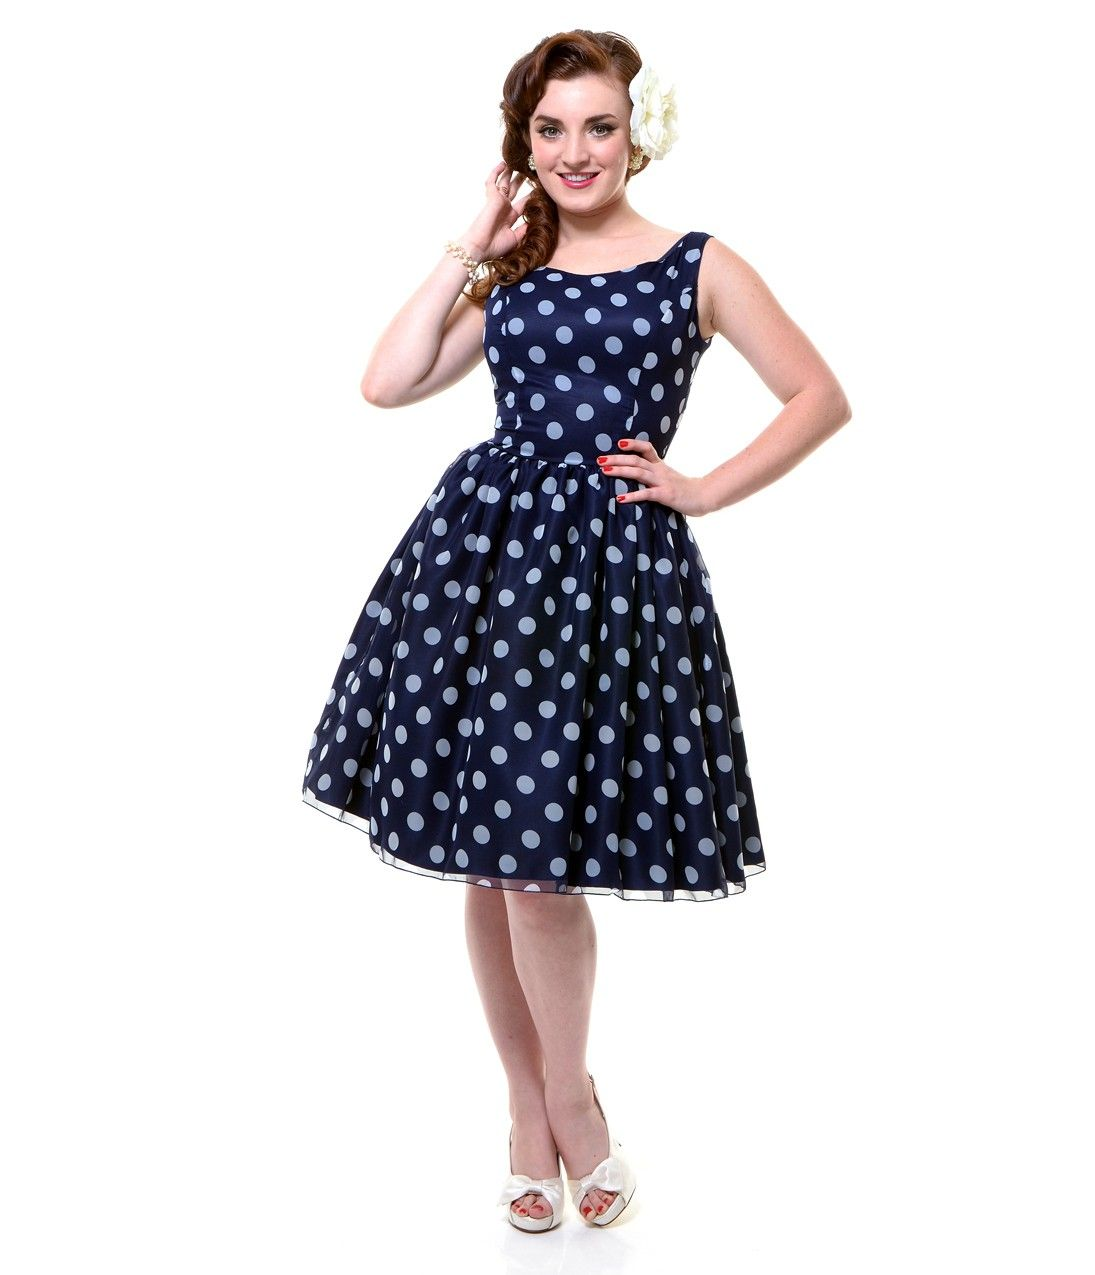 Polka Dot Cocktail Dresses